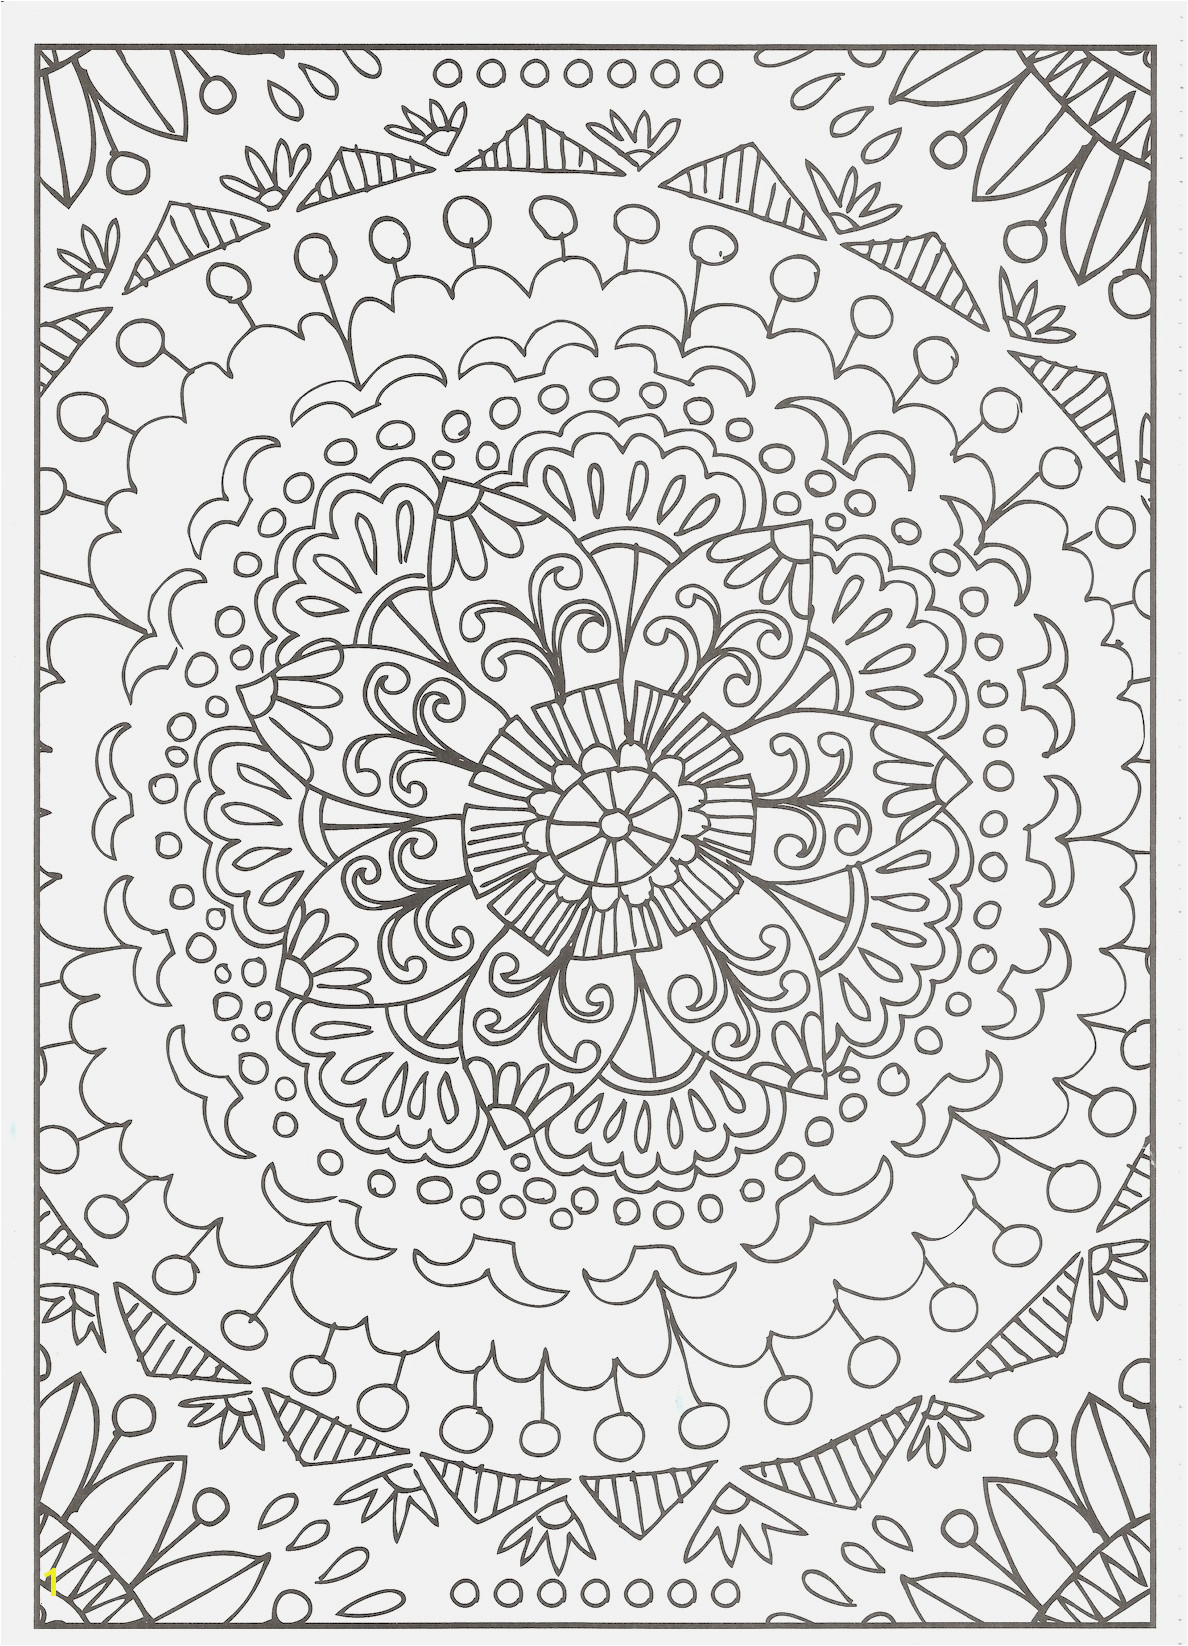 Awesome Coloring Books for Adults Easy and Fun Free Dog Coloring Pages New Best Od Dog Coloring Pages Free